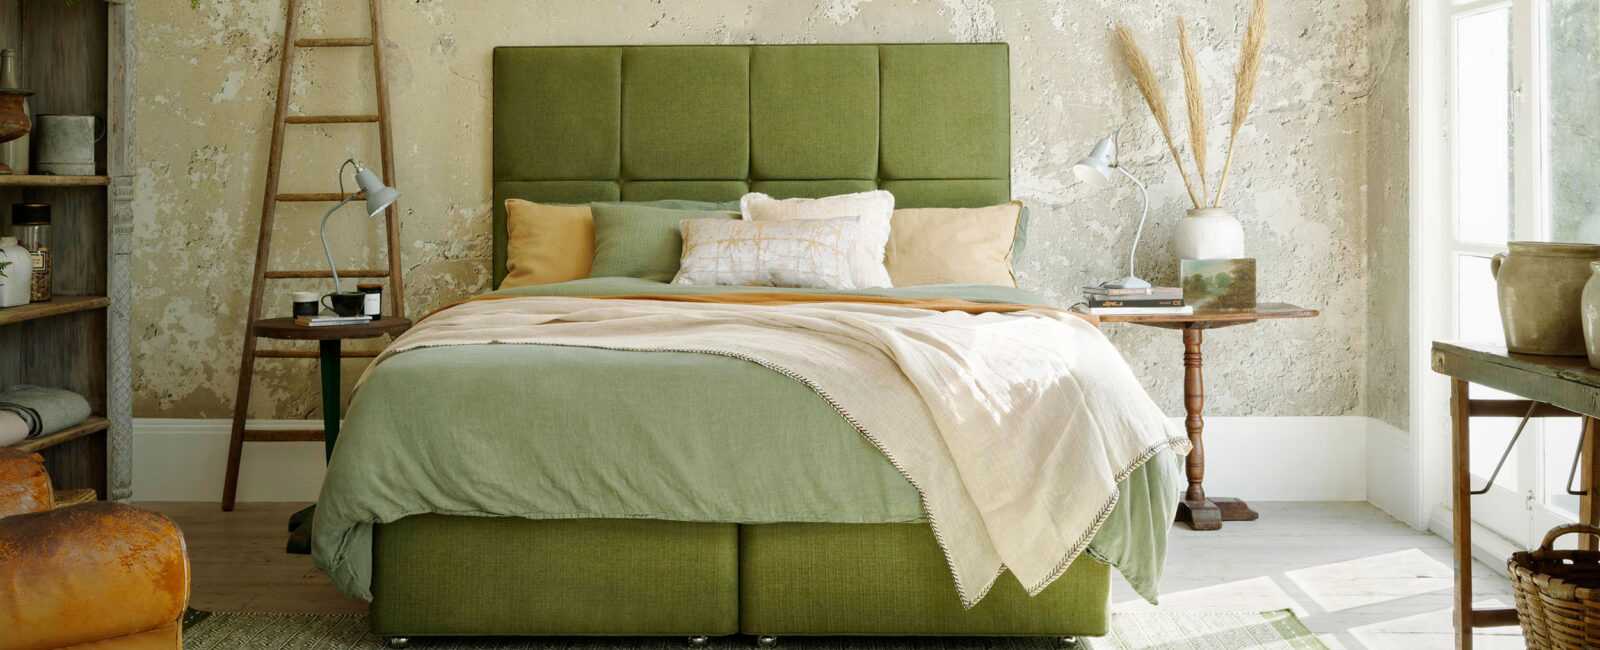 Hypnos divan bed and headboard green